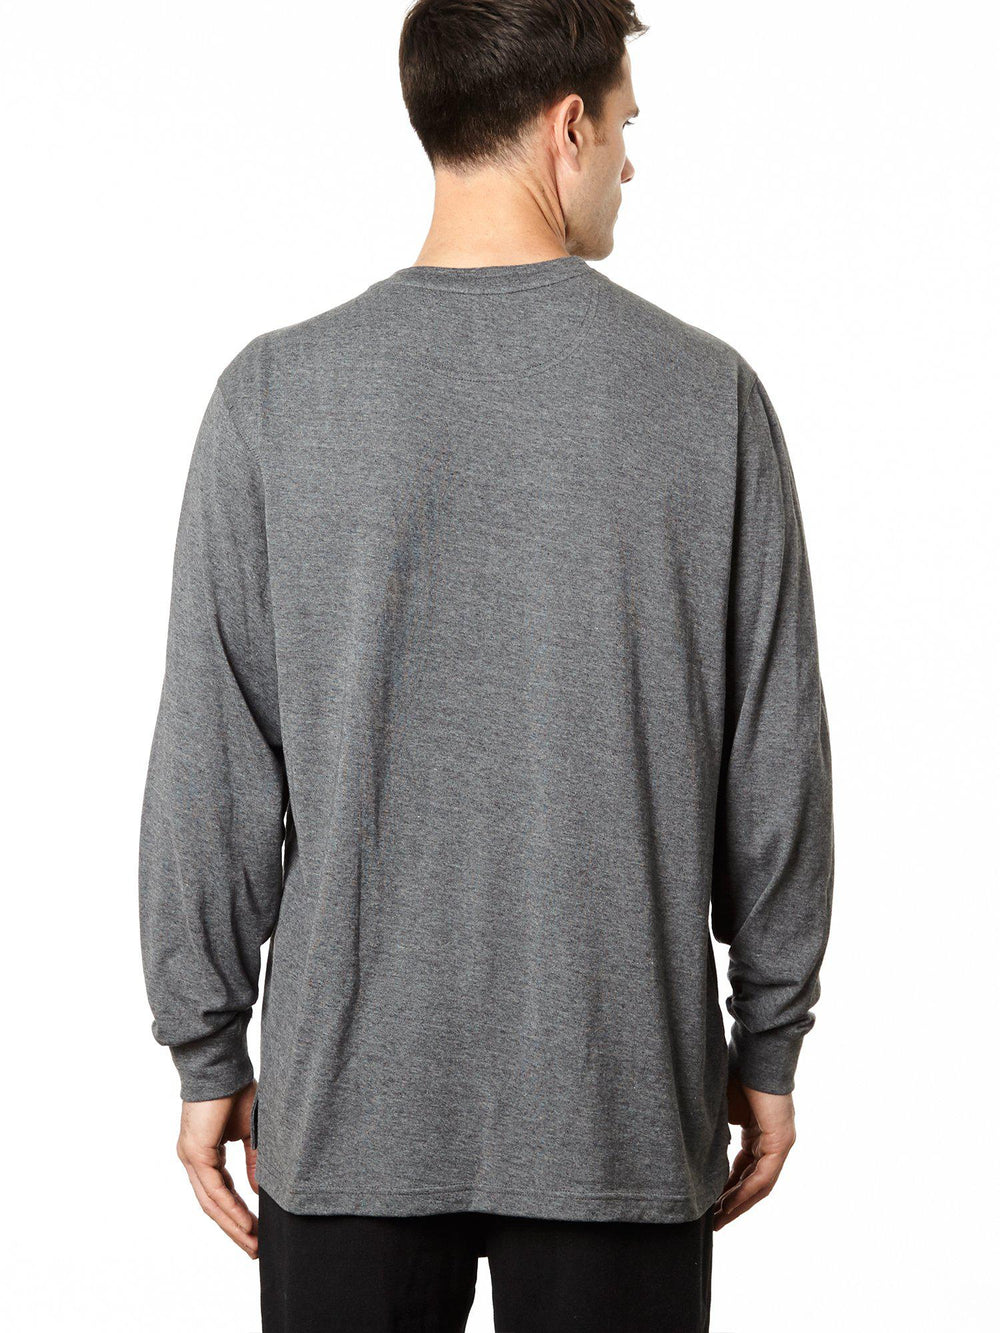 Long Sleeve Pocketed Crew Shirt